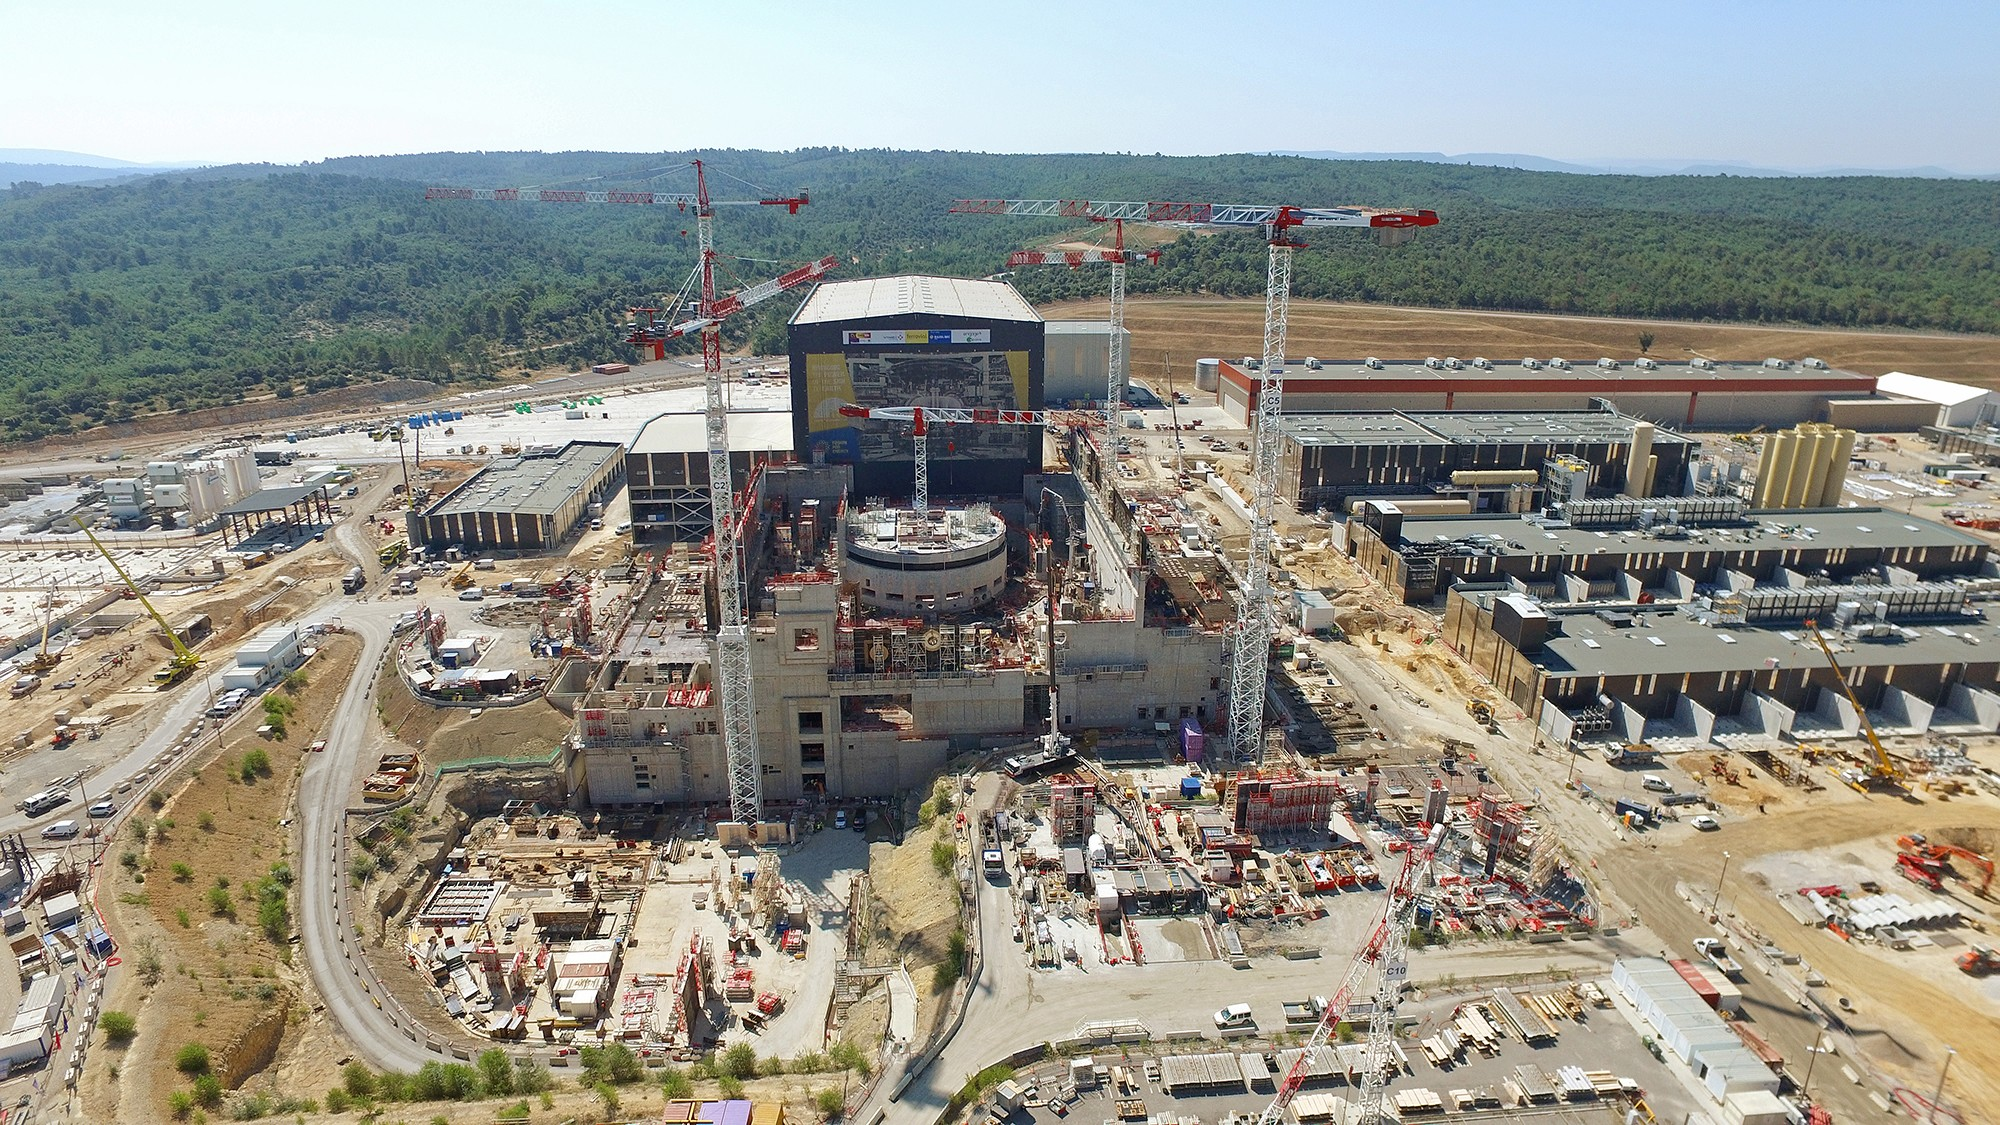 An aerial view of ITER.